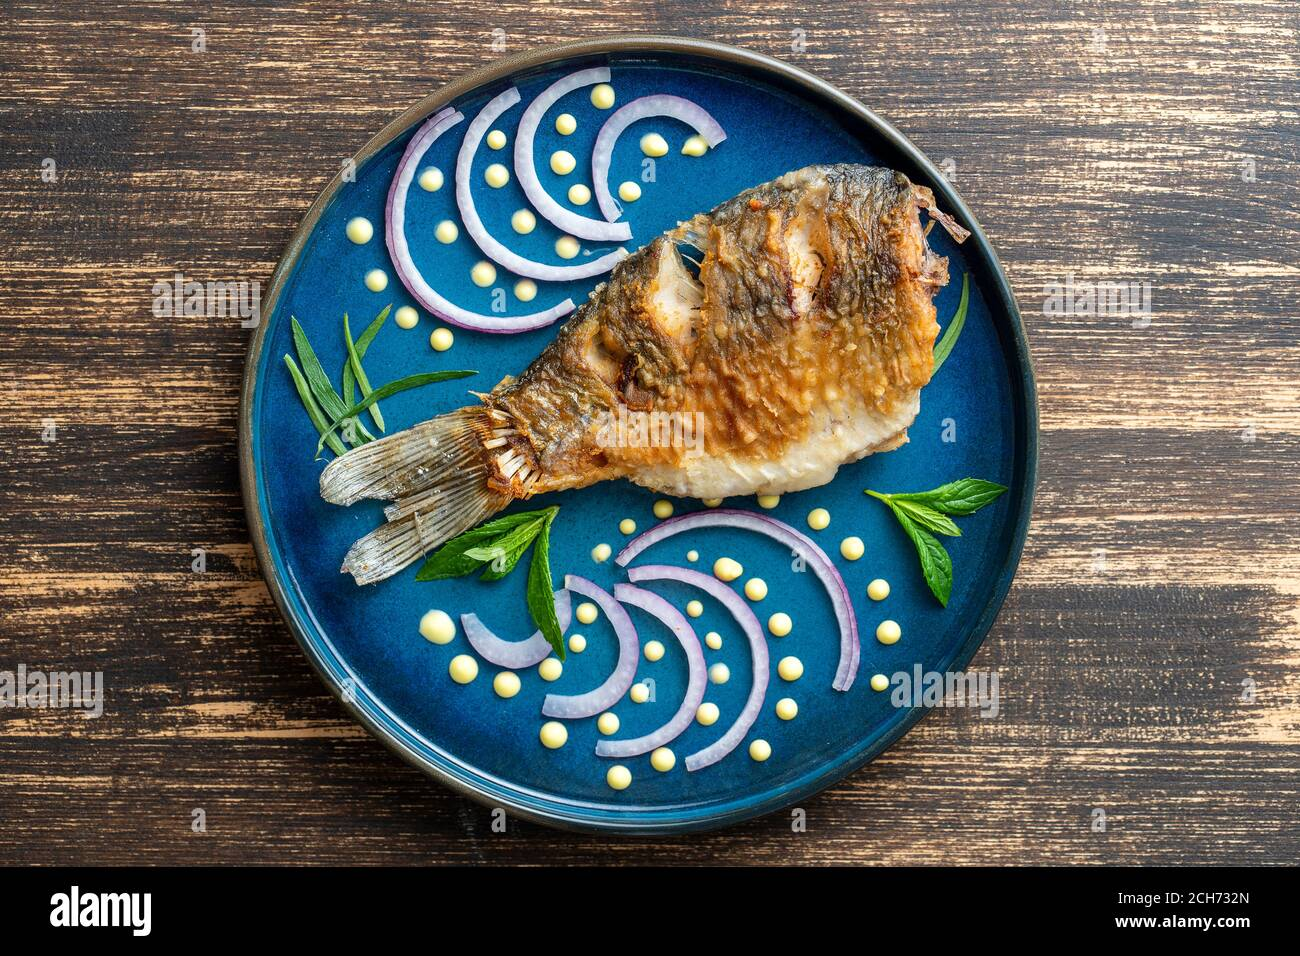 Fried Crucian Carp With Onion And Sauce Dot Painting On A Plate On A Wooden Background Top View Close Up Stock Photo Alamy